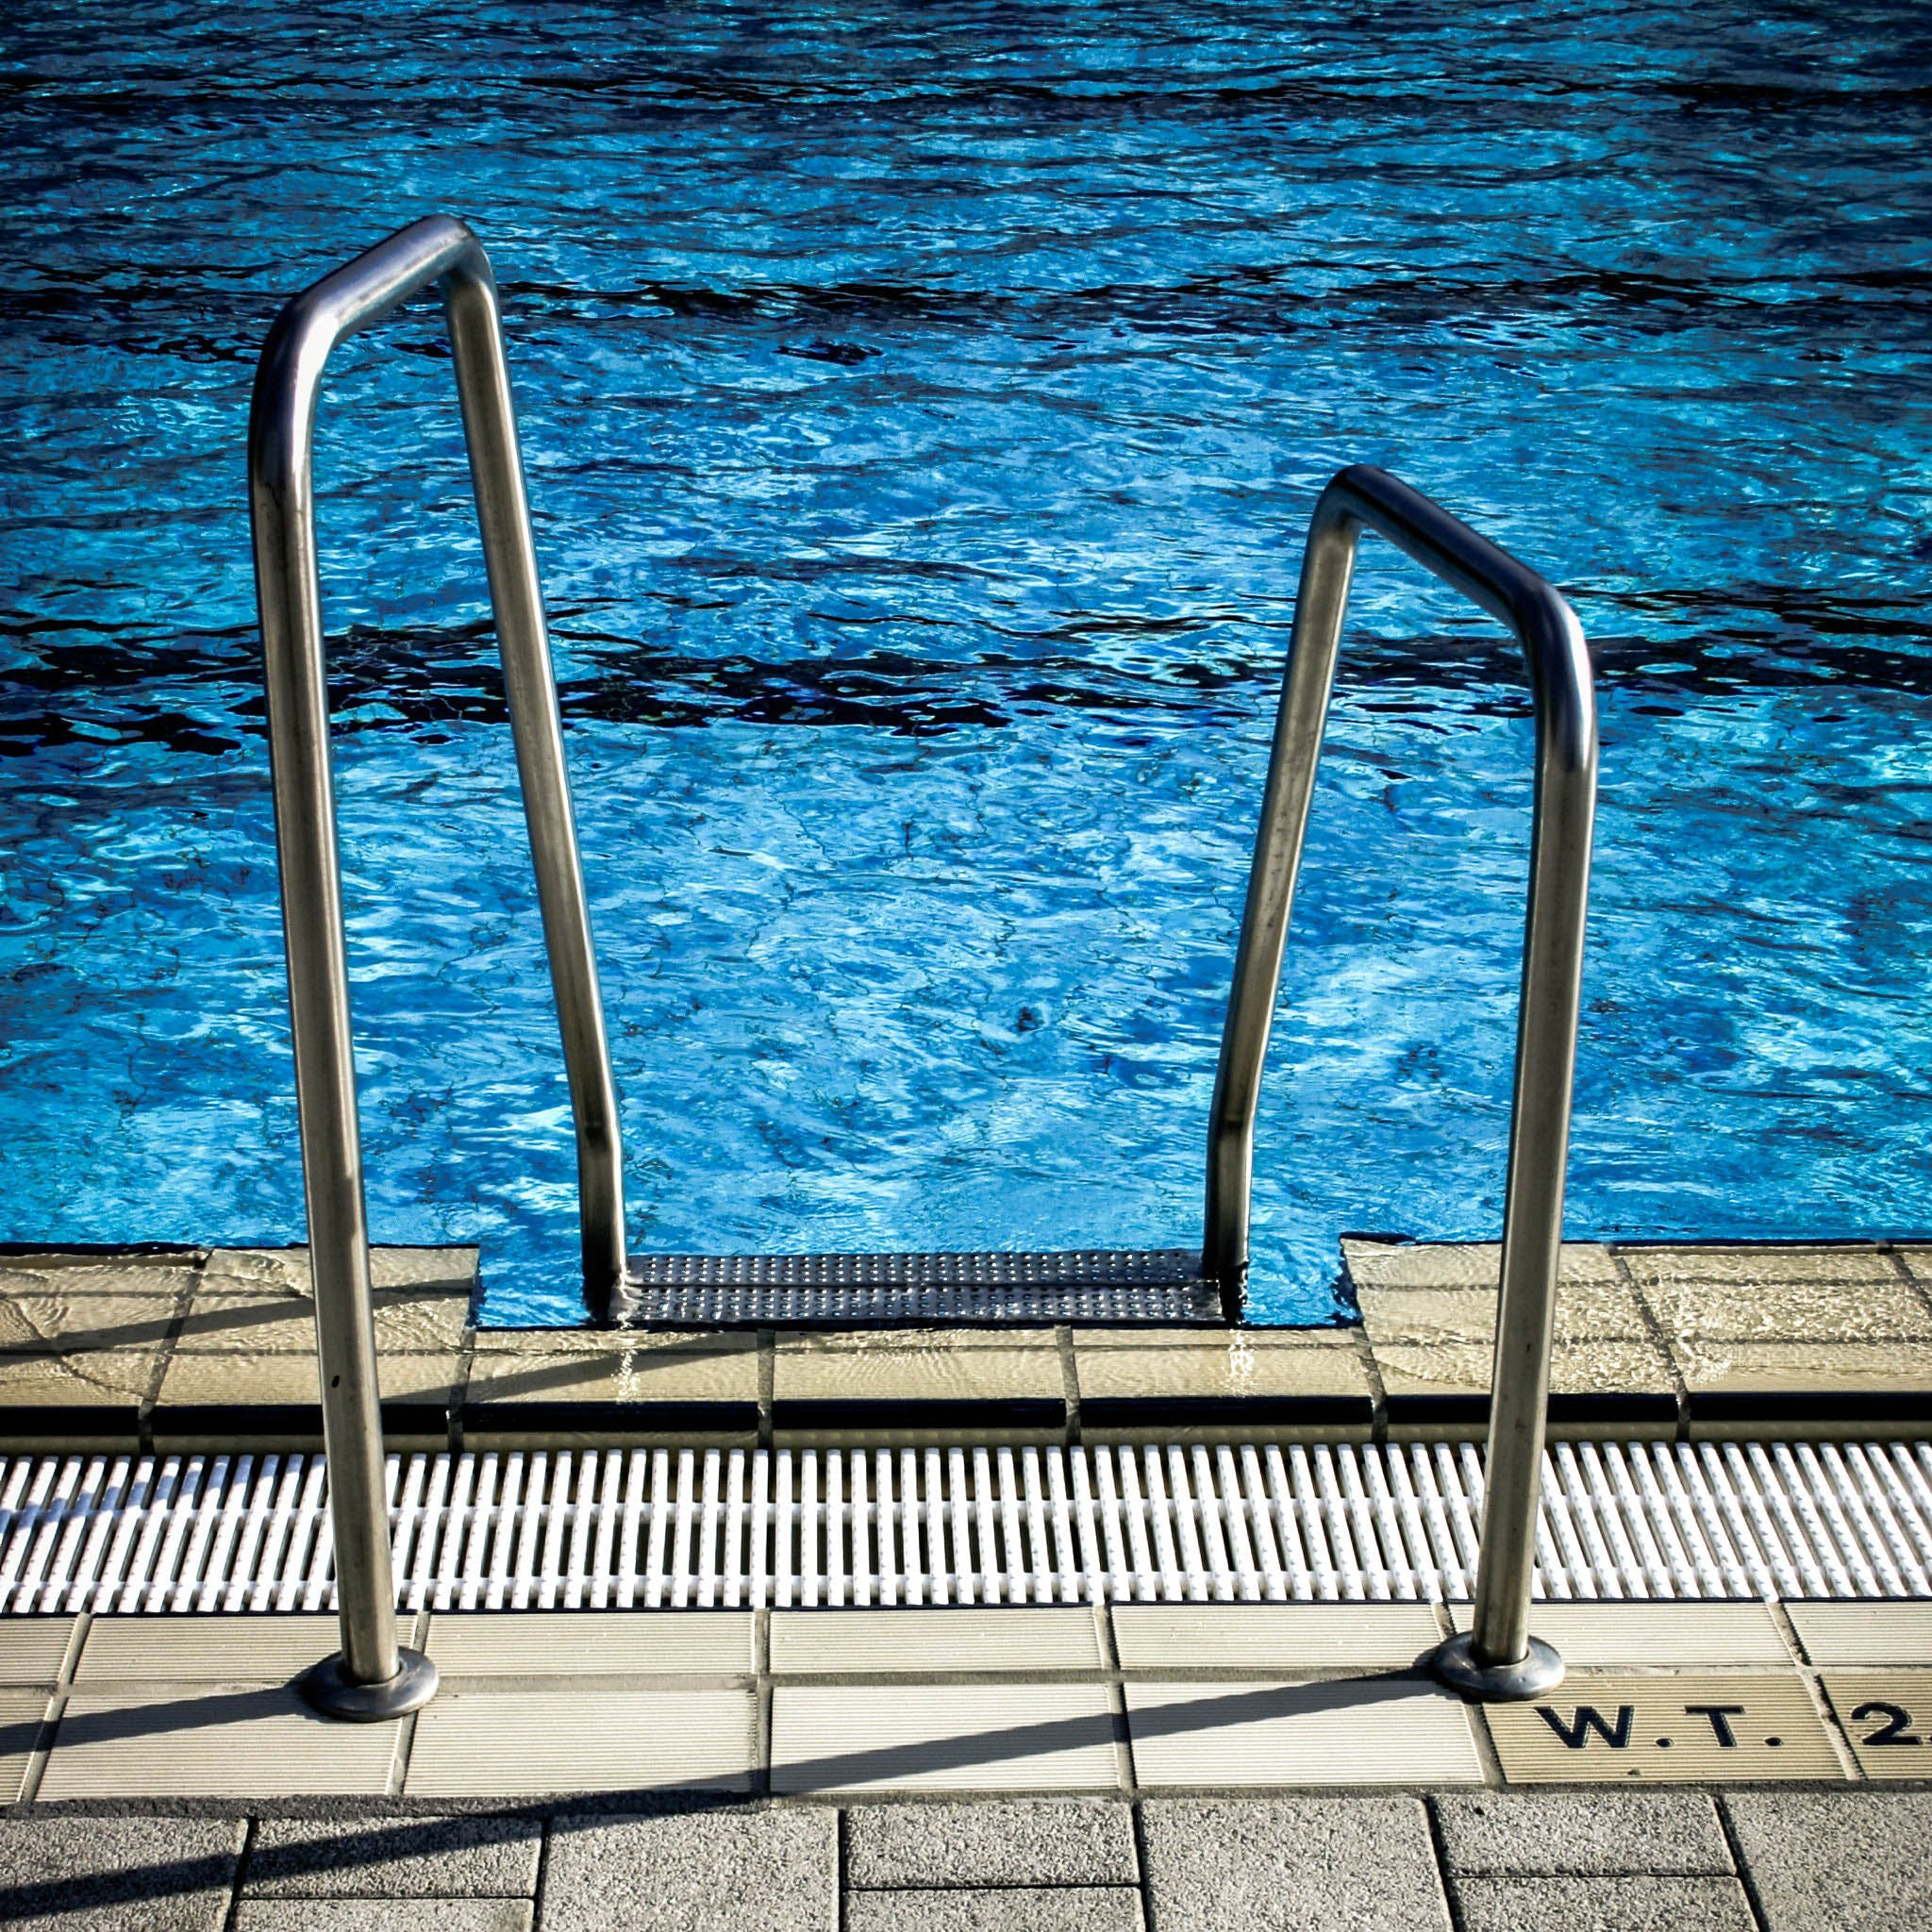 Swimming pool,Water,Blue,Daytime,Sky,Line,Architecture,Summer,Guard rail,Sea